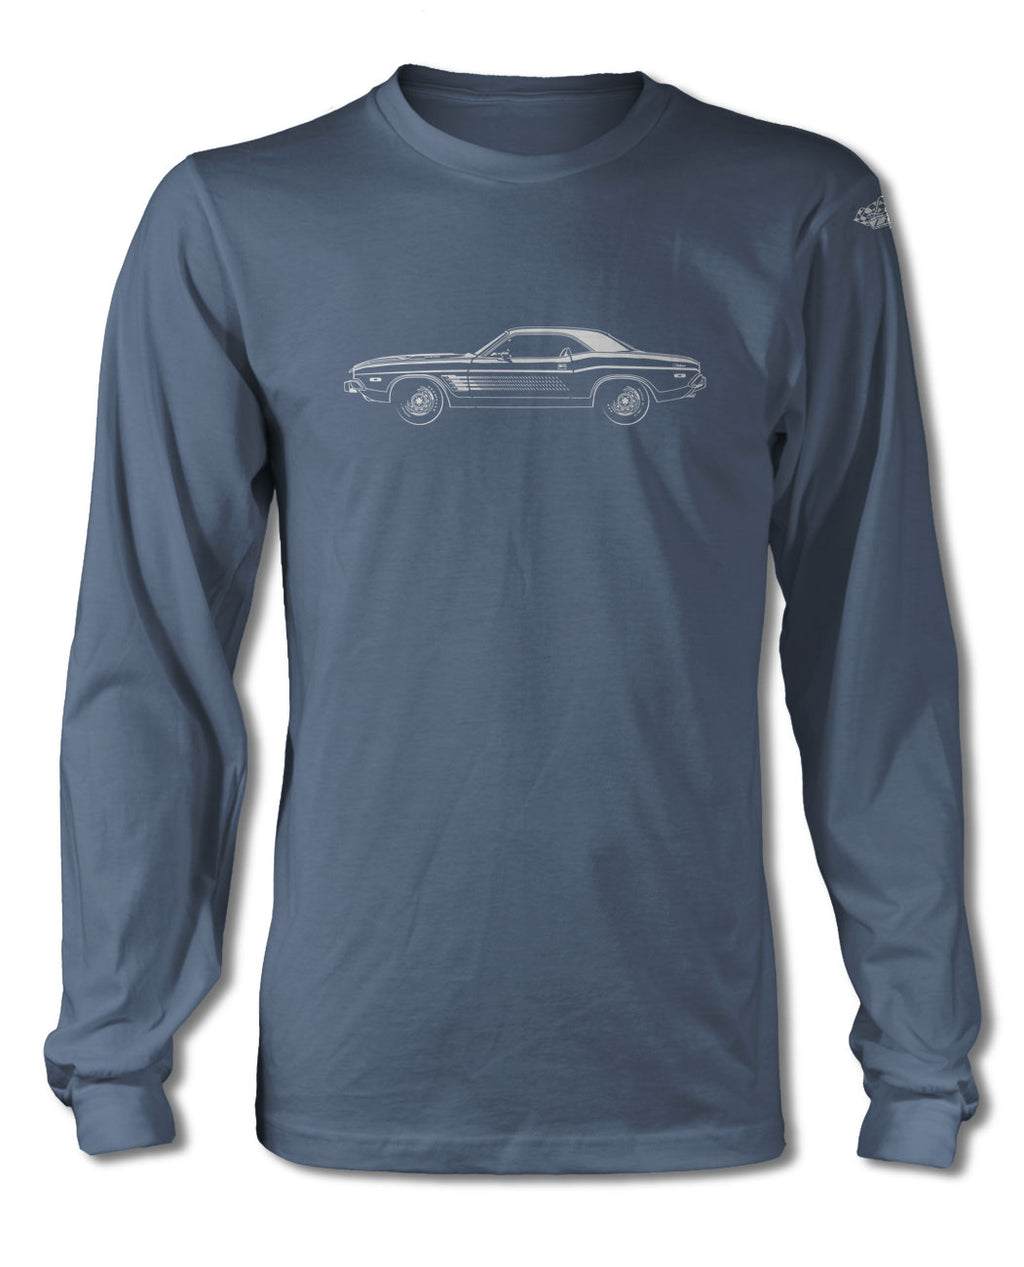 1974 Dodge Challenger Rallye with Stripes Coupe T-Shirt - Long Sleeves - Side View